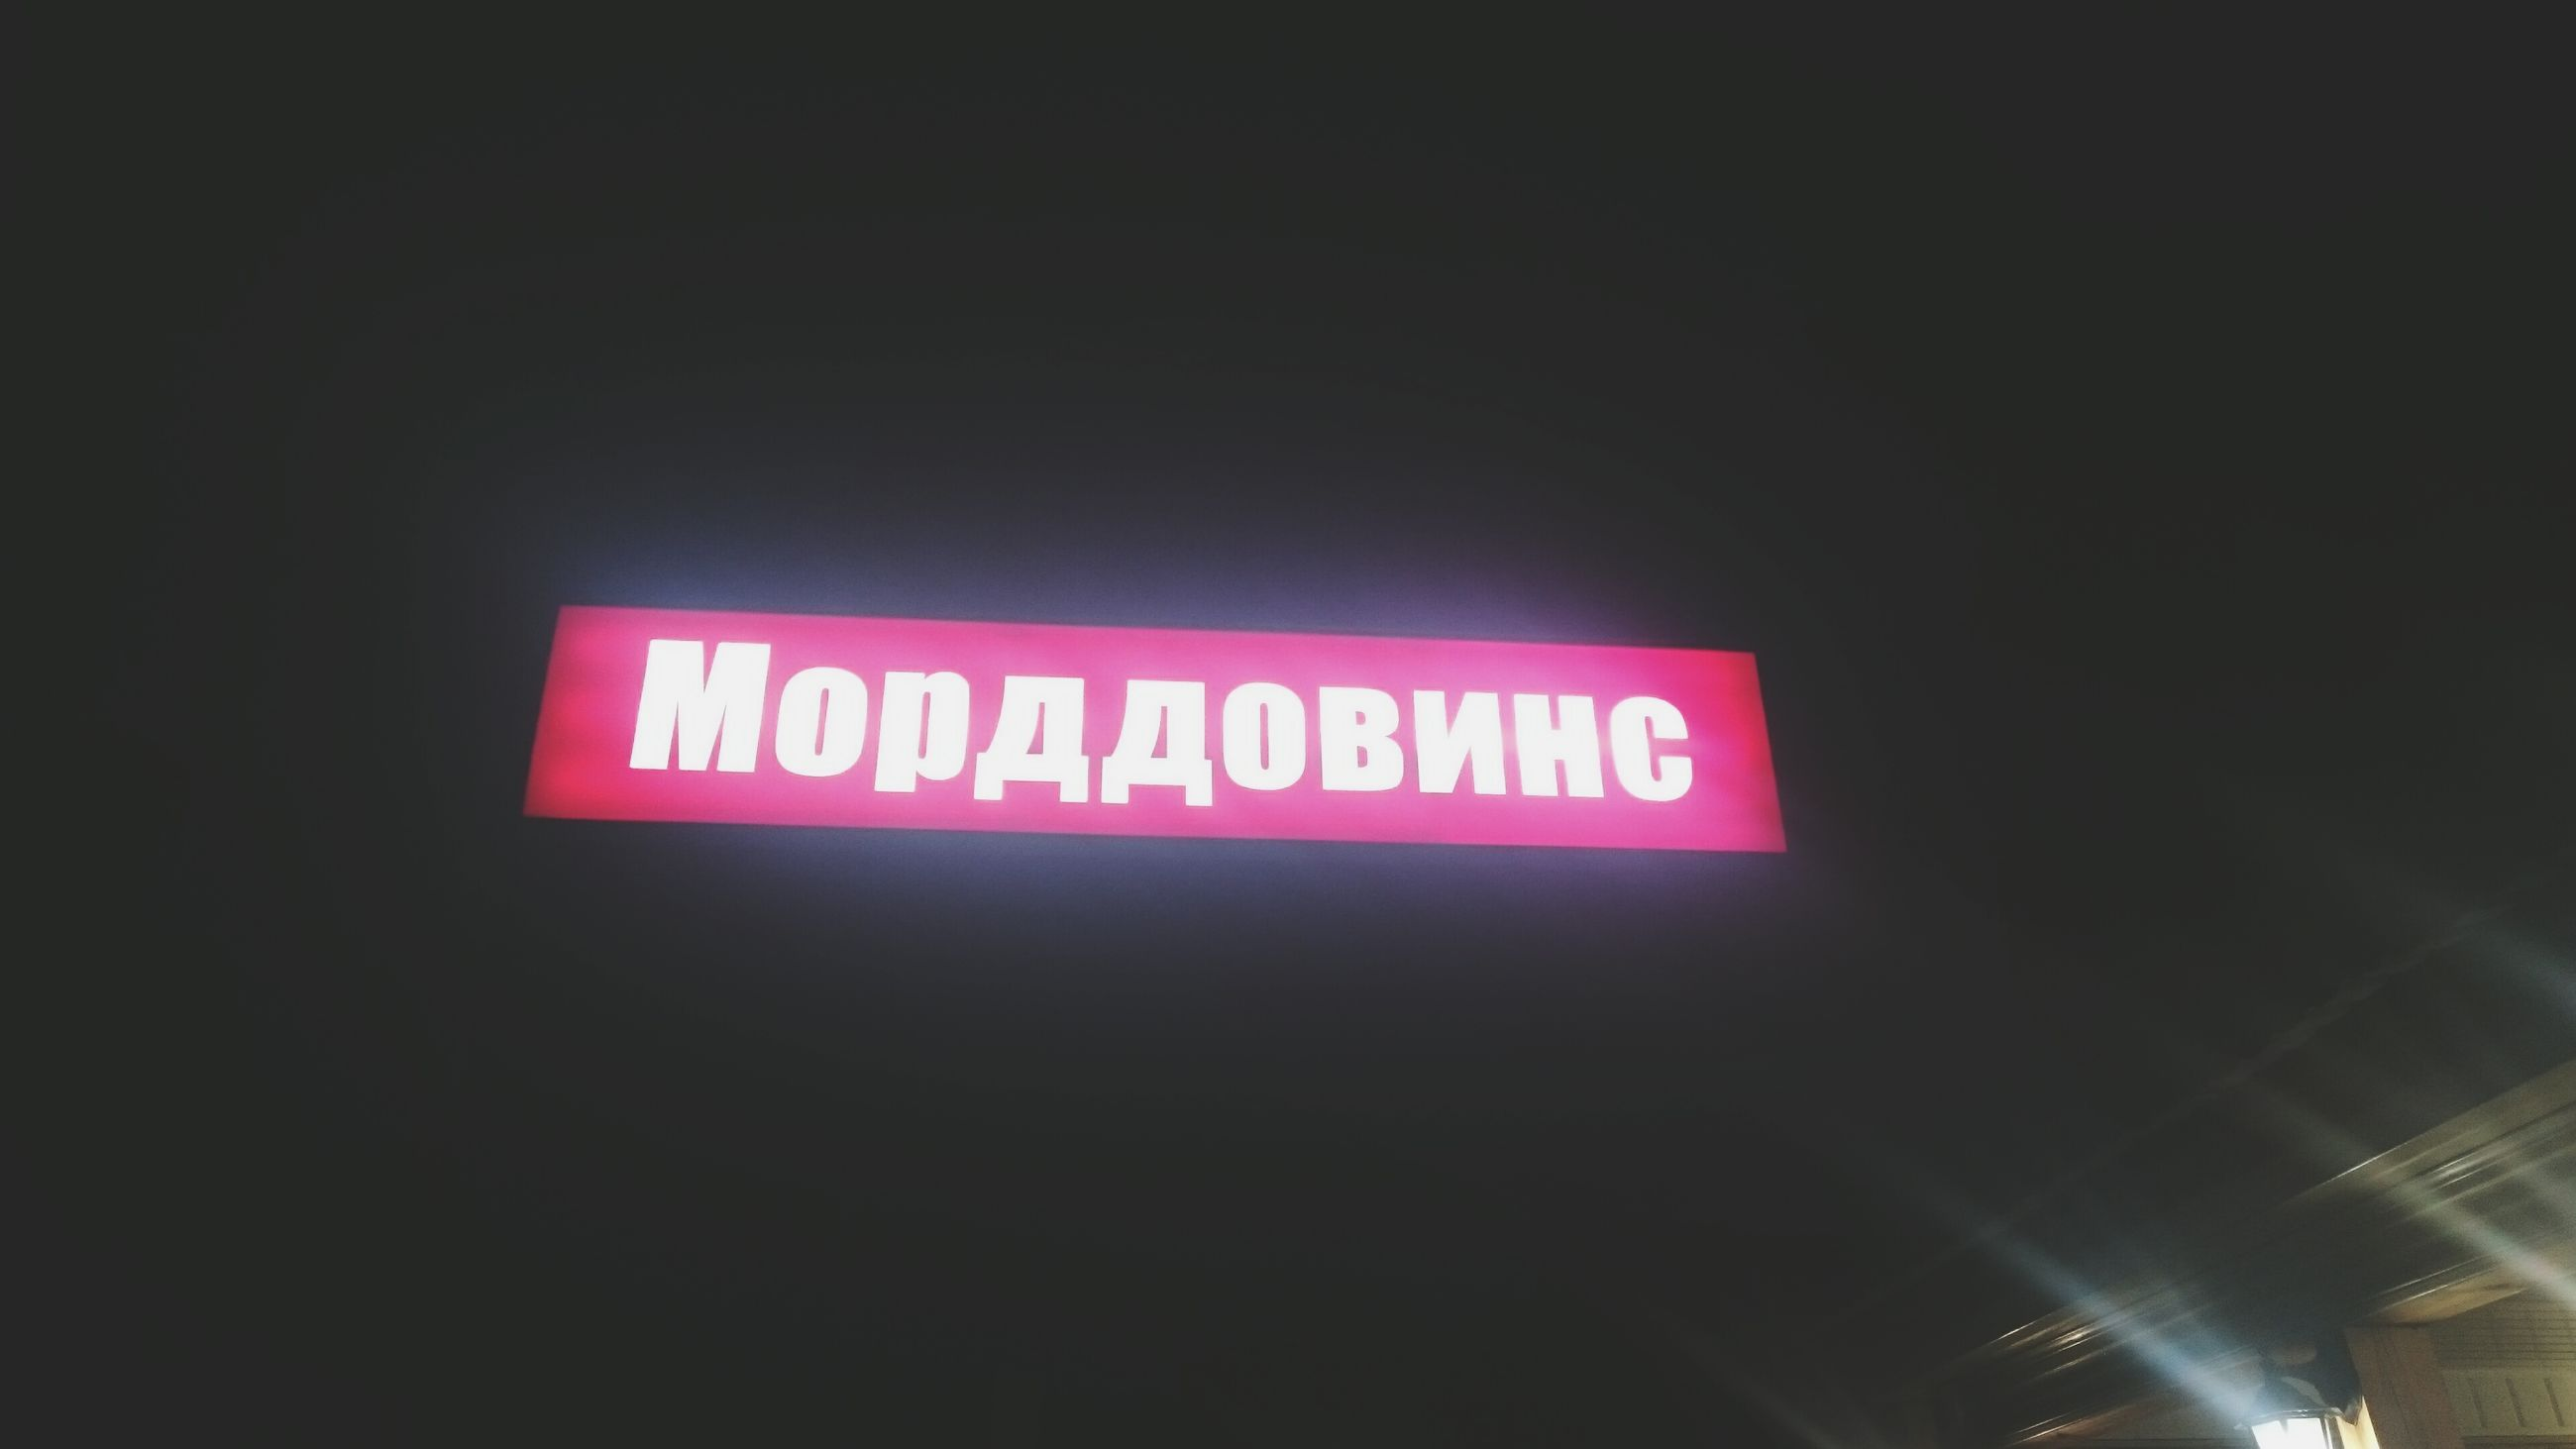 text, western script, communication, red, capital letter, sign, information sign, night, illuminated, information, guidance, copy space, indoors, non-western script, close-up, no people, wall - building feature, neon, warning sign, dark